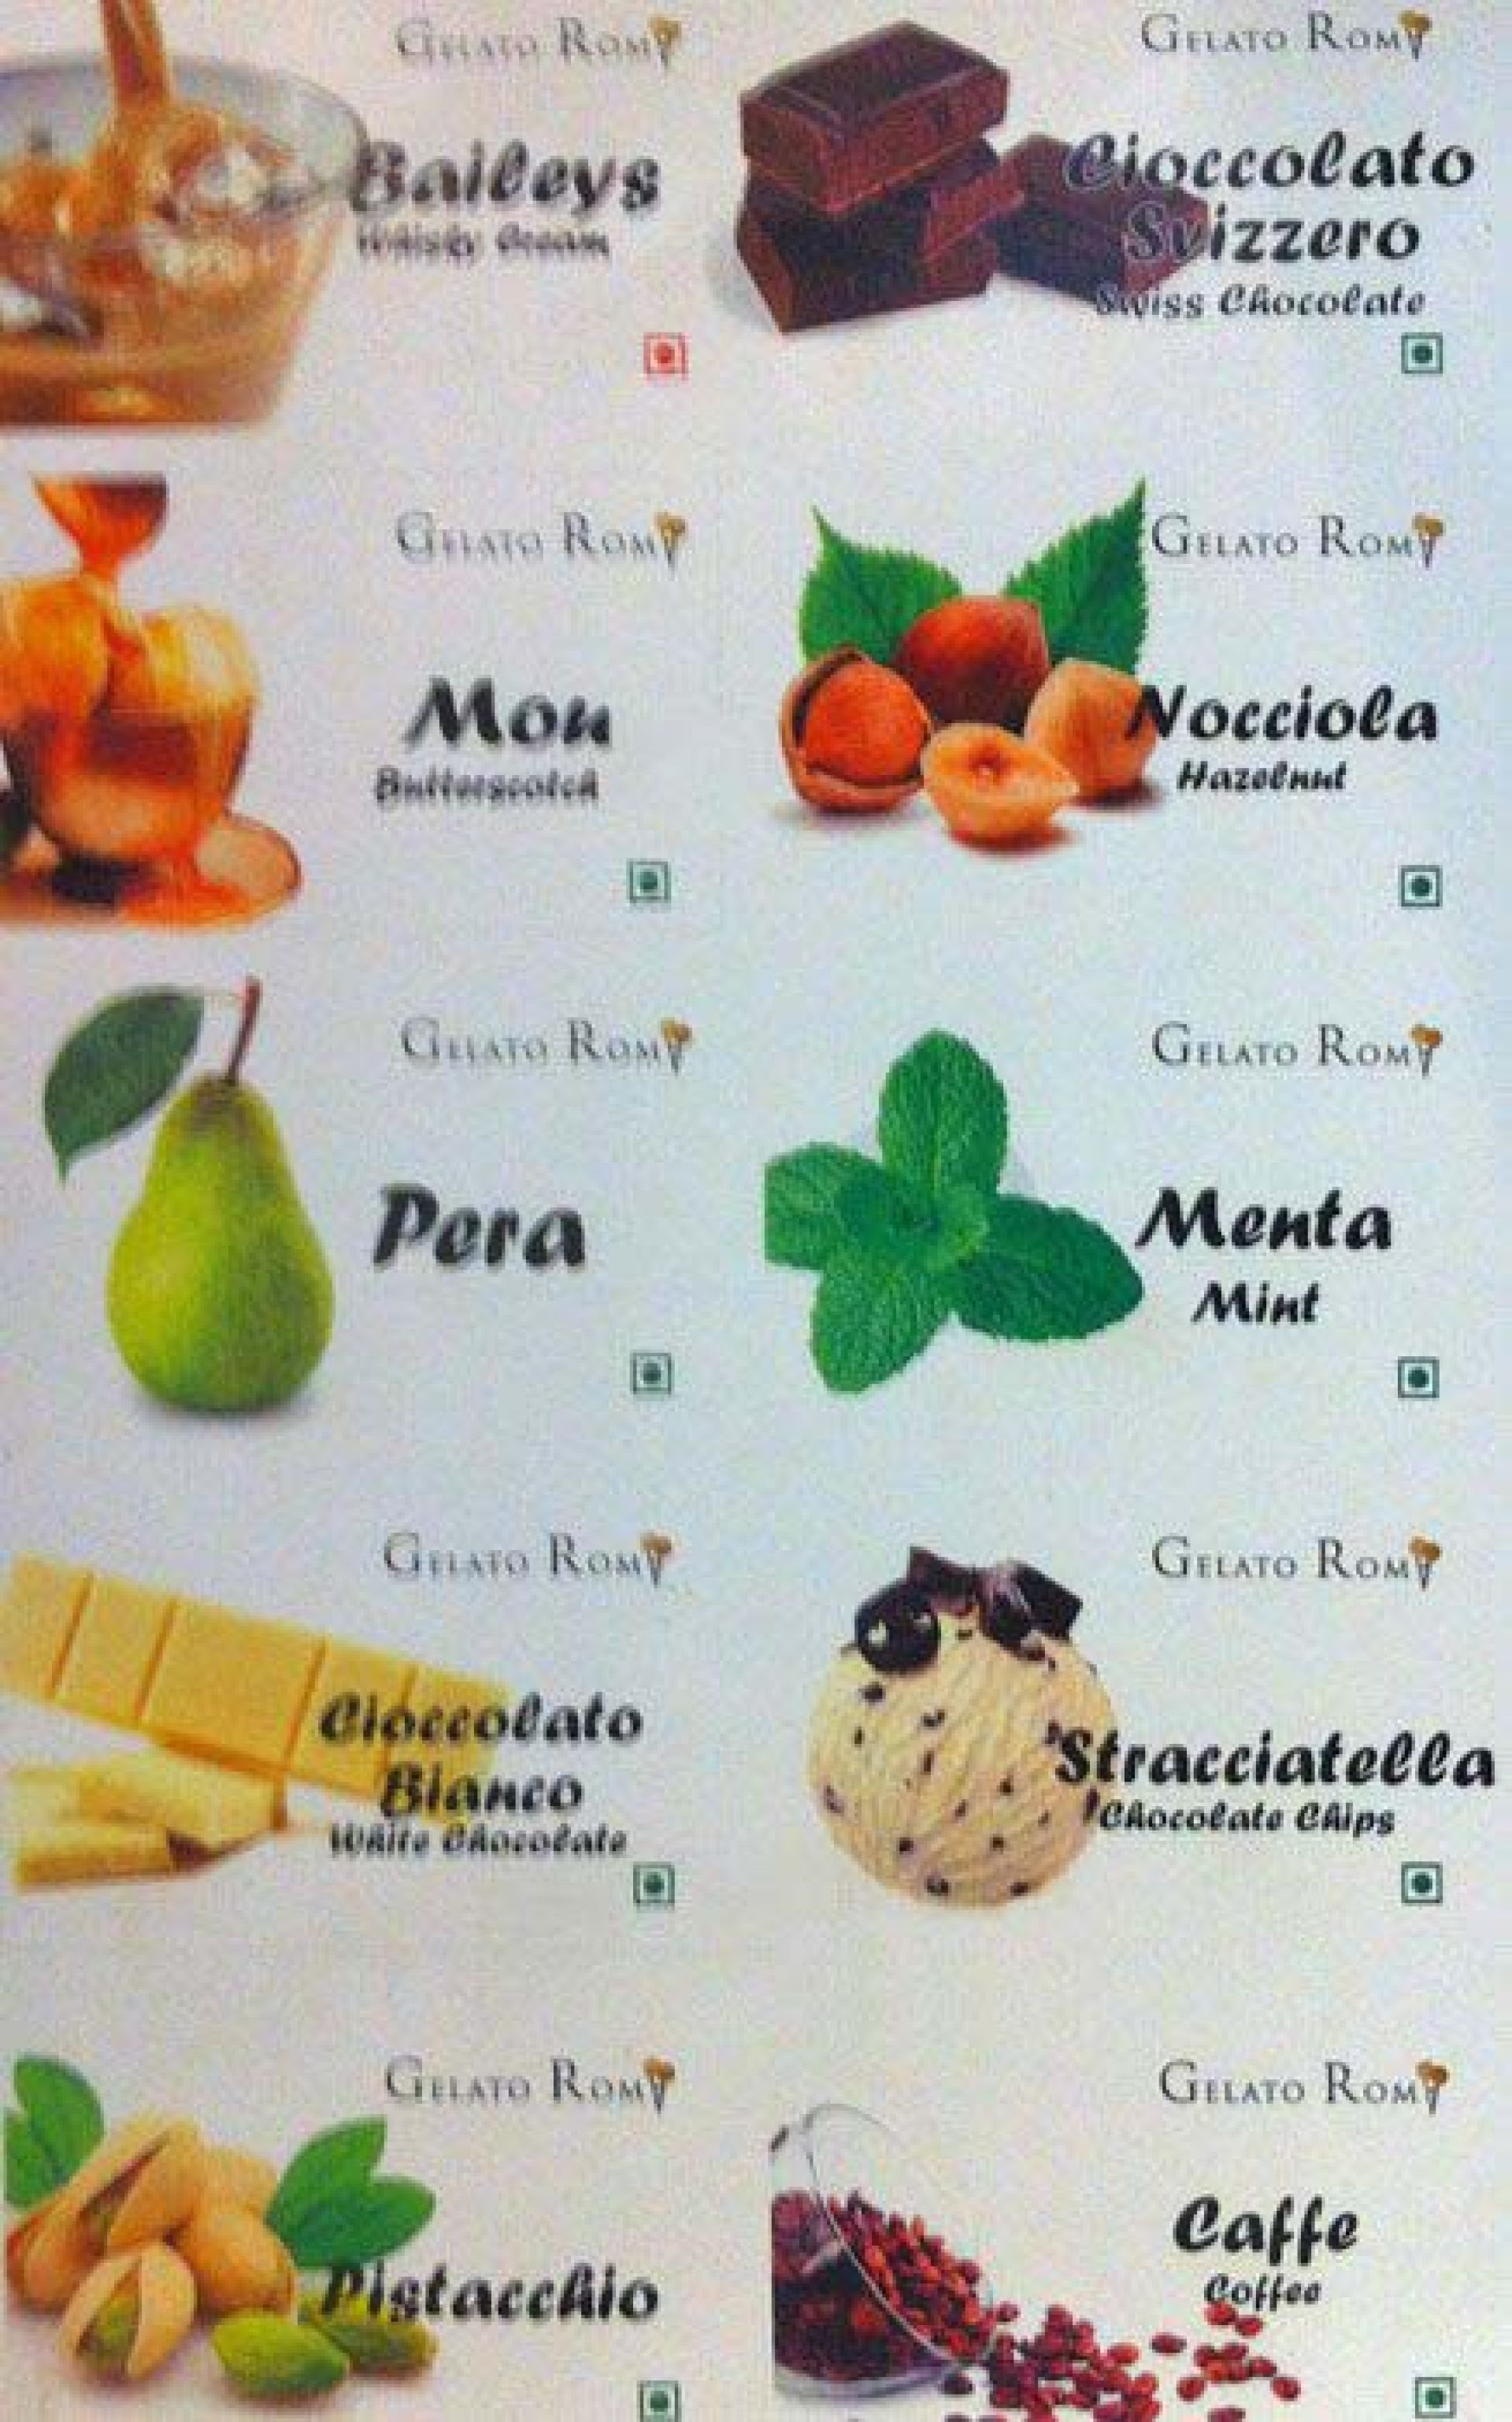 Menu of the Gelato Roma